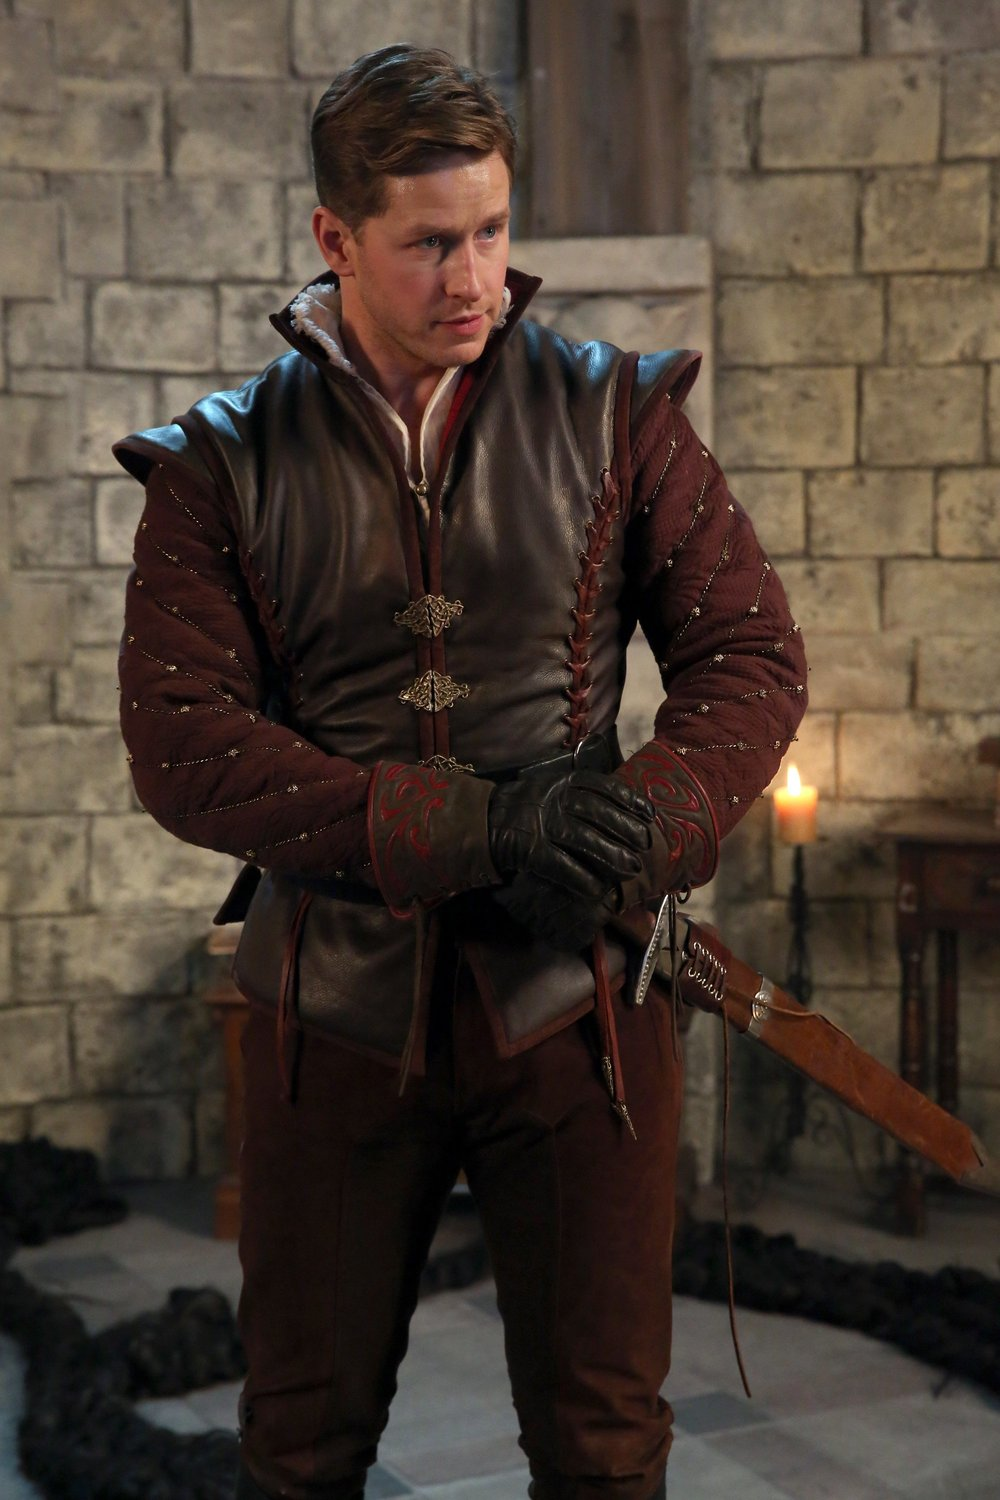 Prince Charming - Doublet